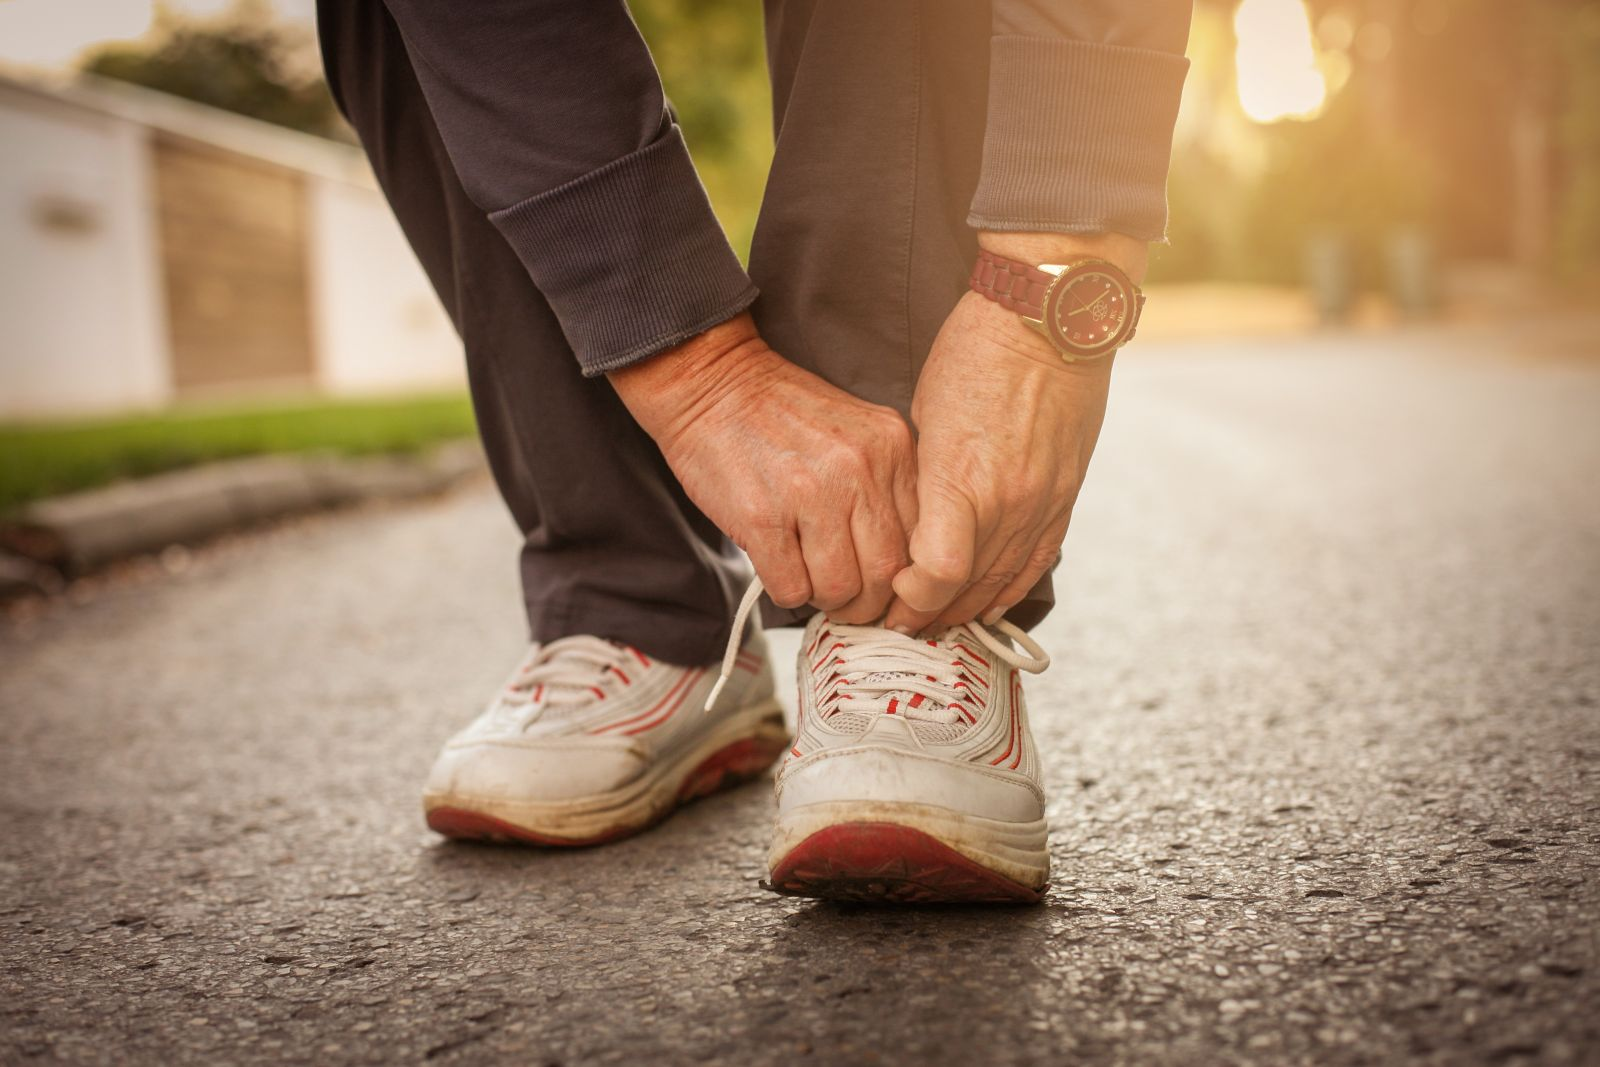 Doctor recommends using ONE pair of shoes to minimise risk